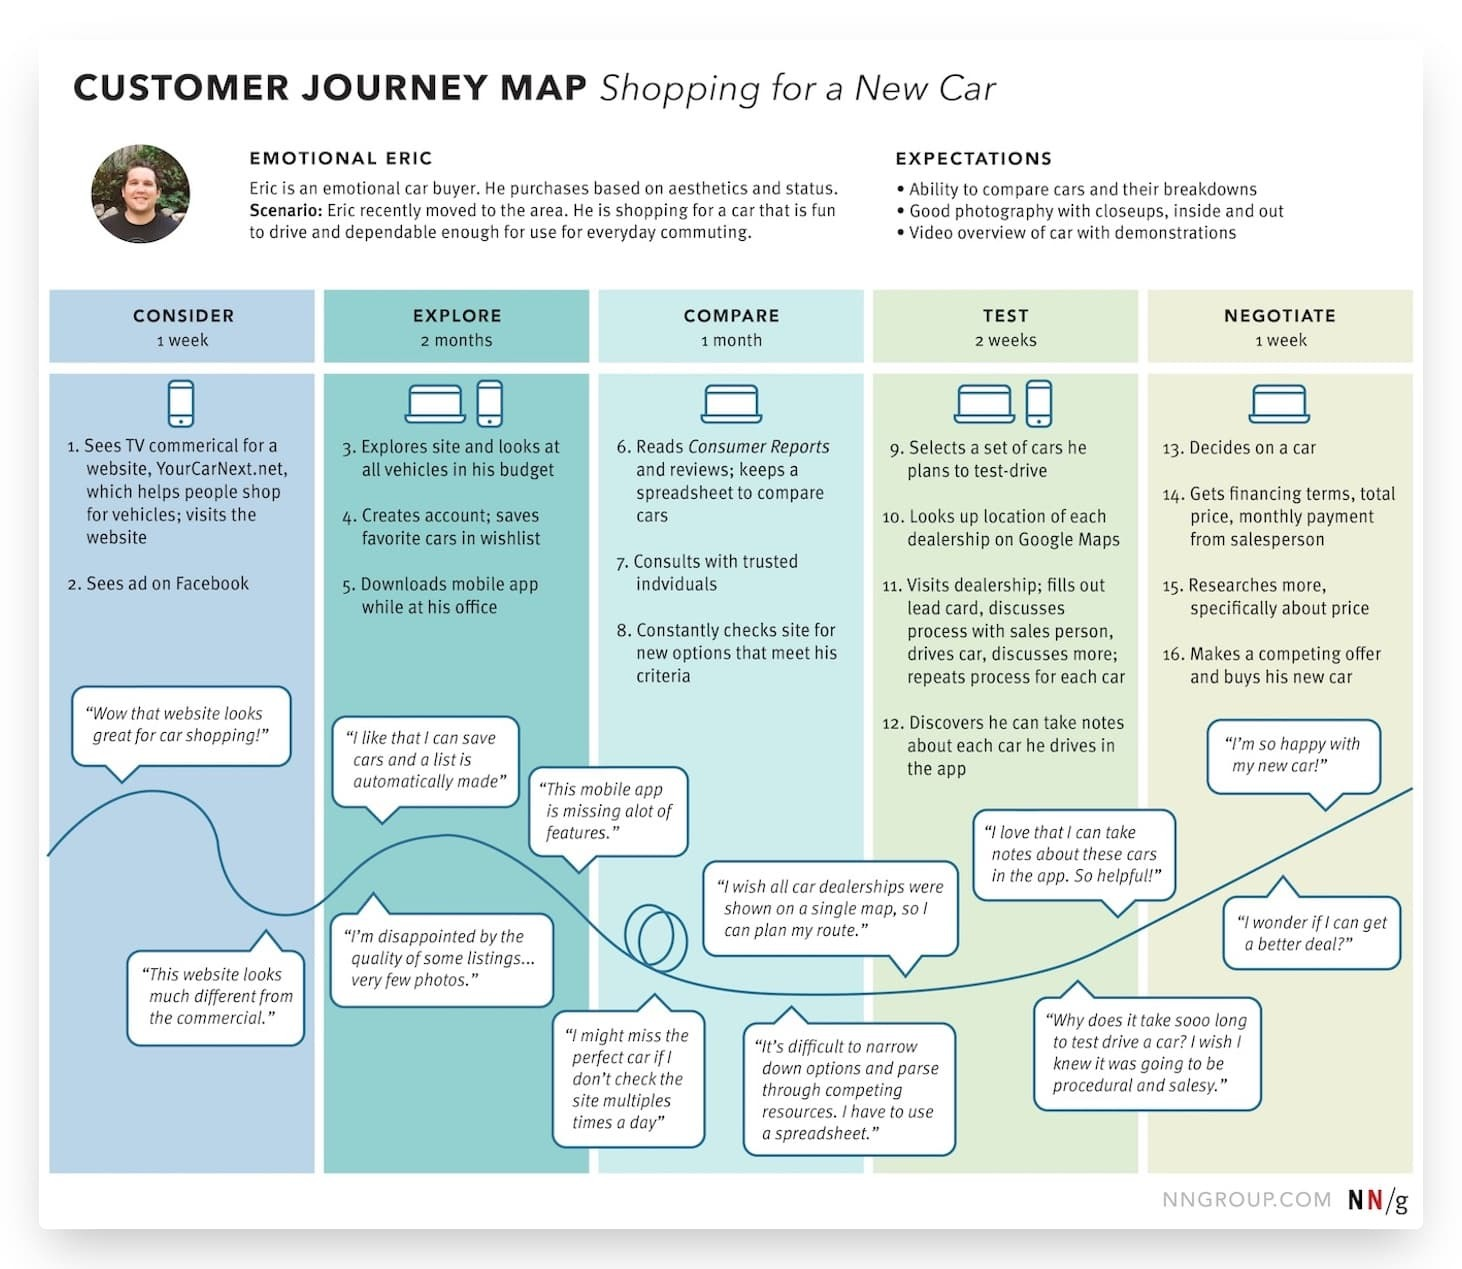 customer journey map example from nngroup